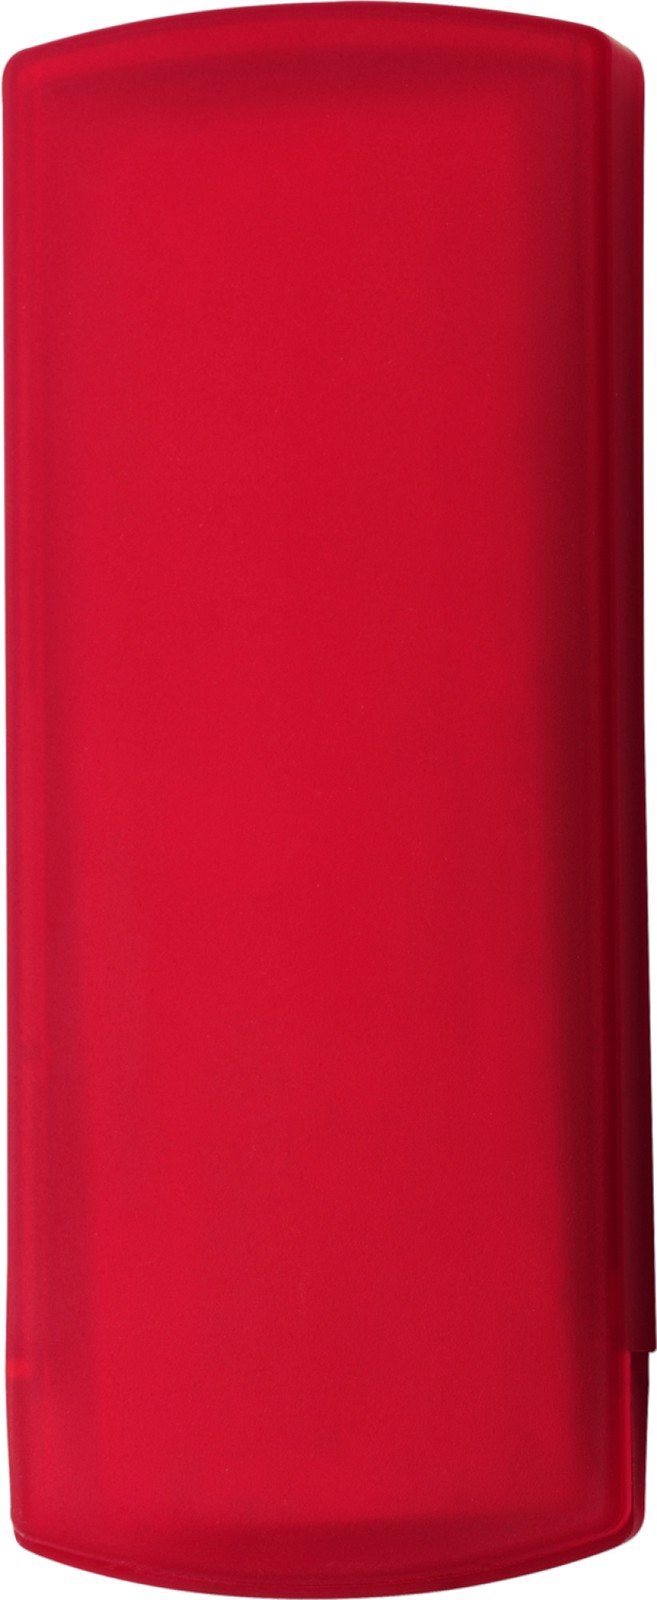 Plastic case with plasters - Red